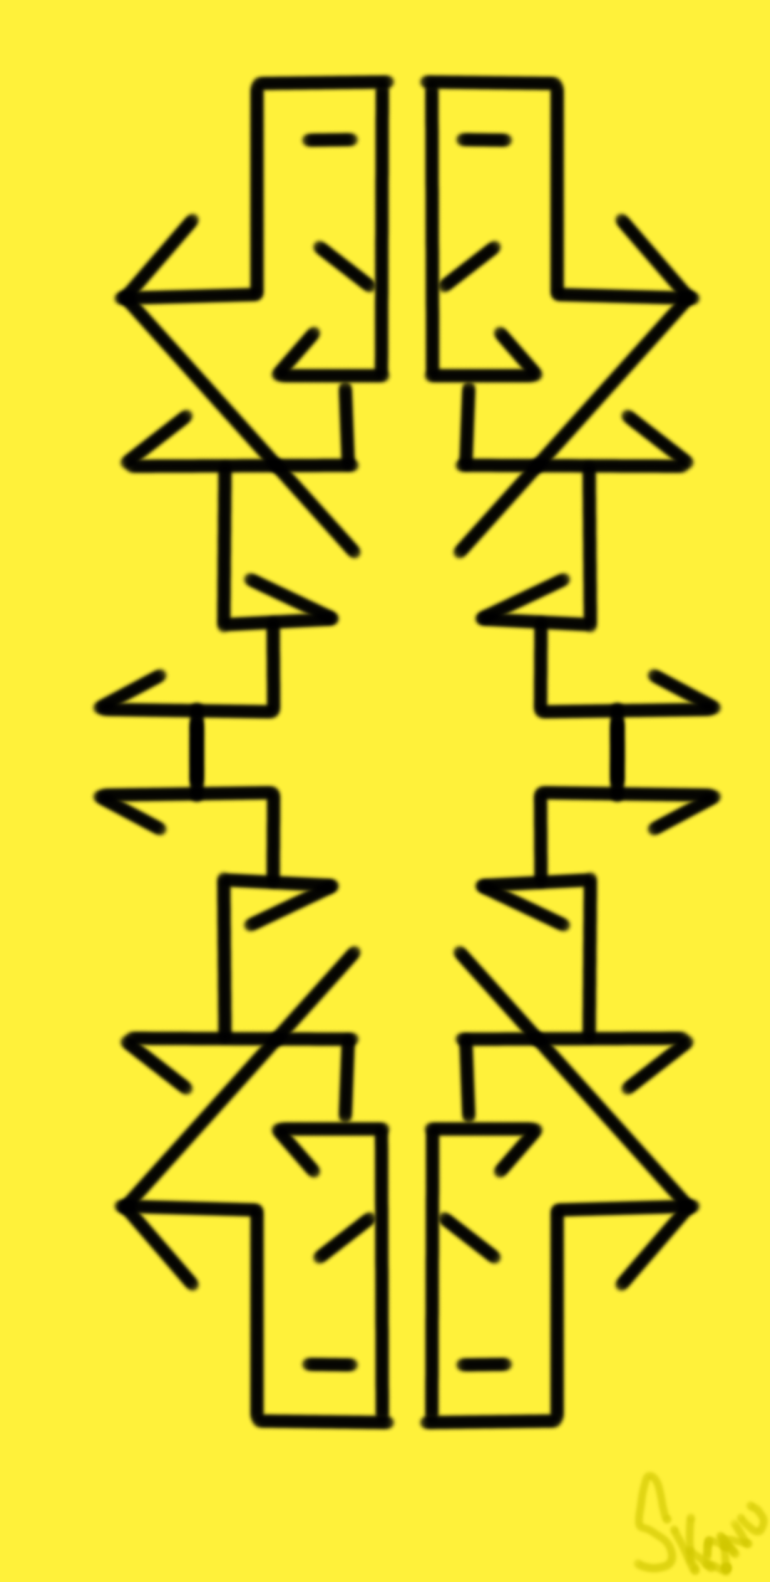 A geometric pattern with black angled lines connecting over a yellow background